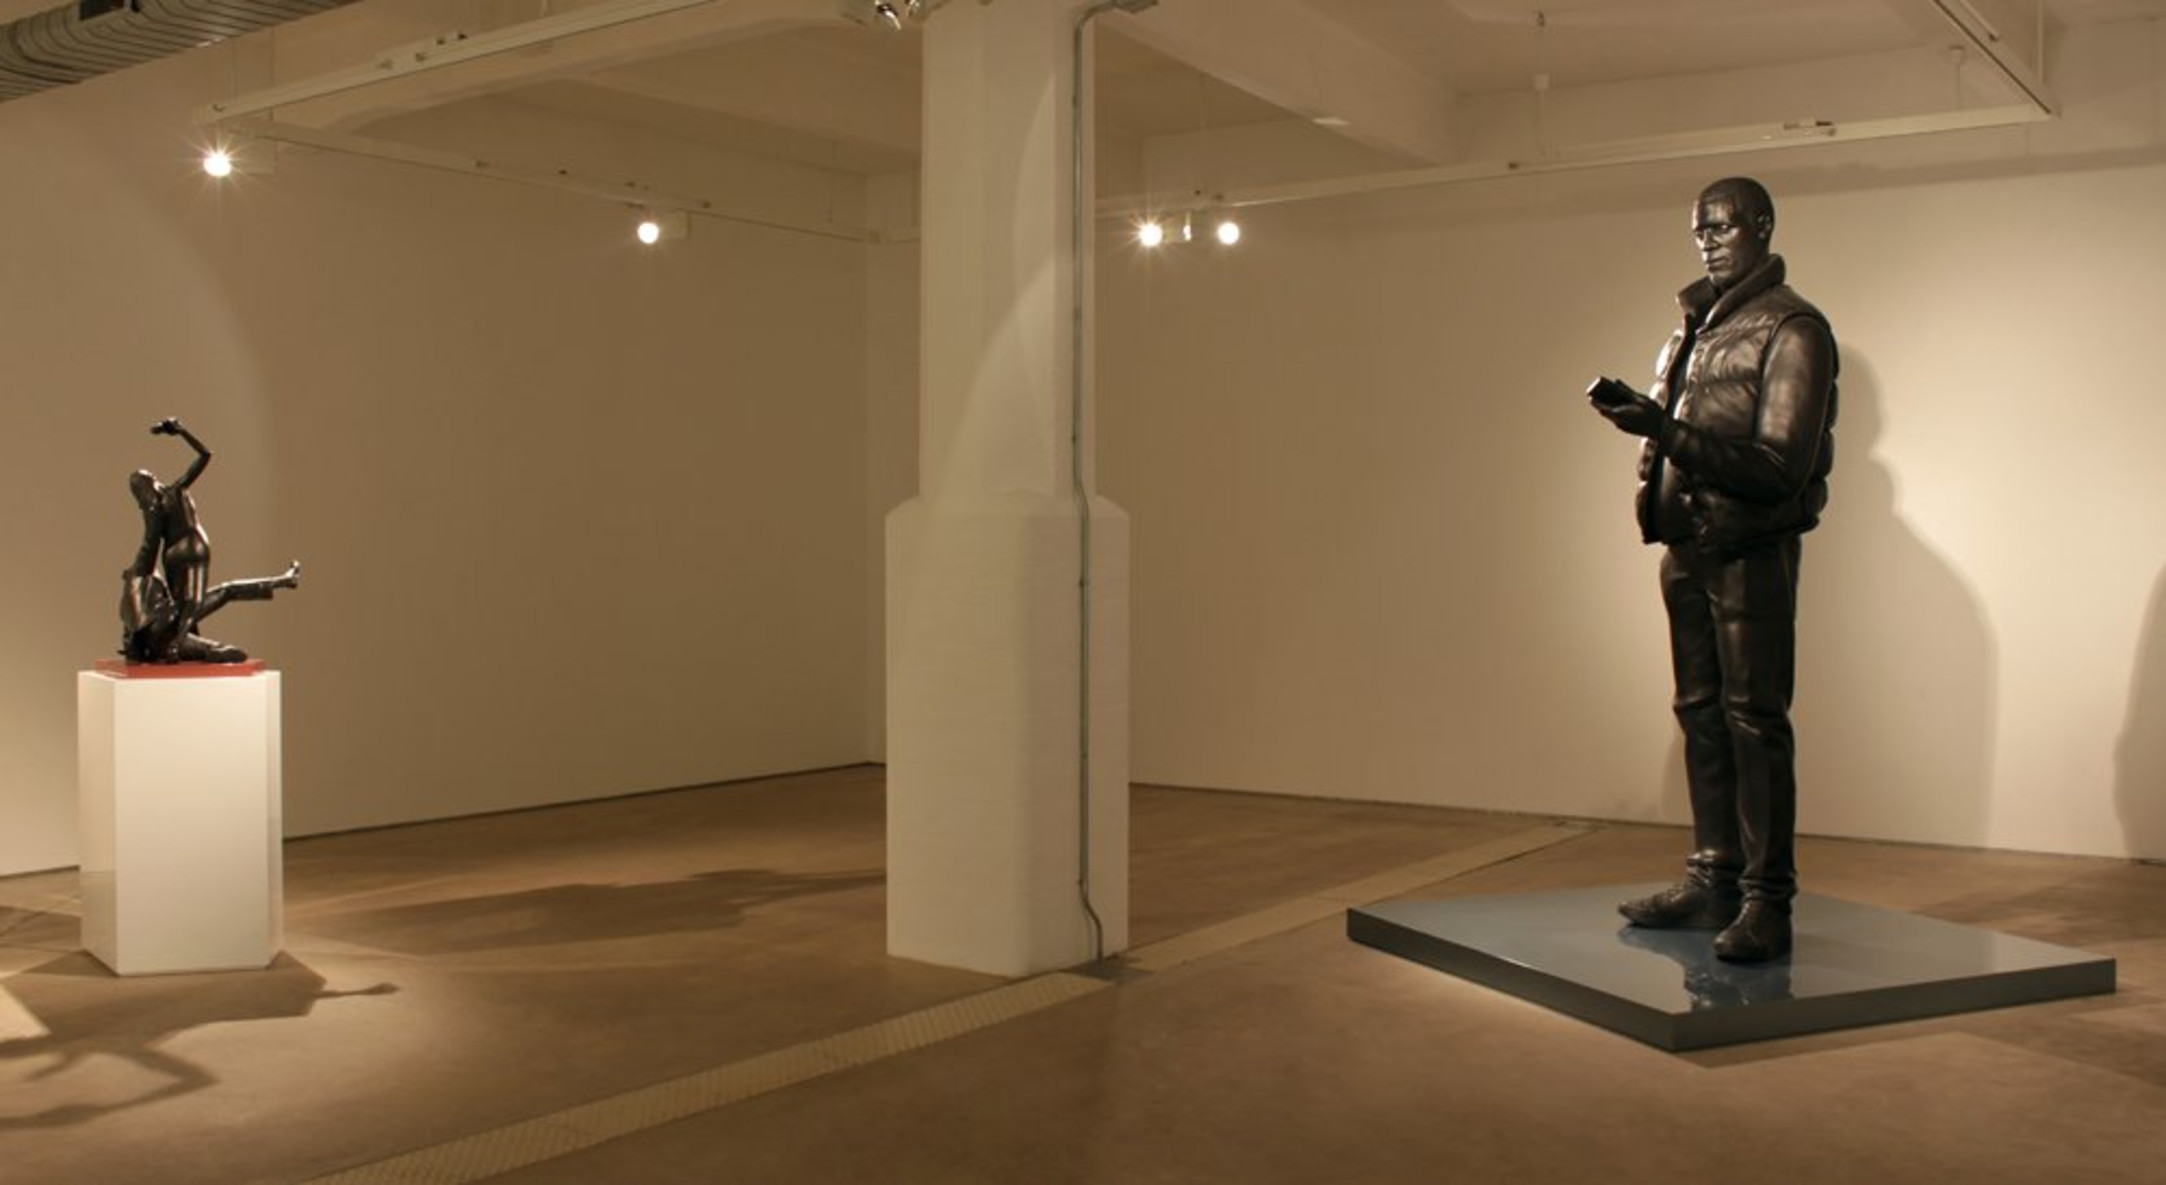 Installation view of Tom Price, Ancient Systems at Hales London